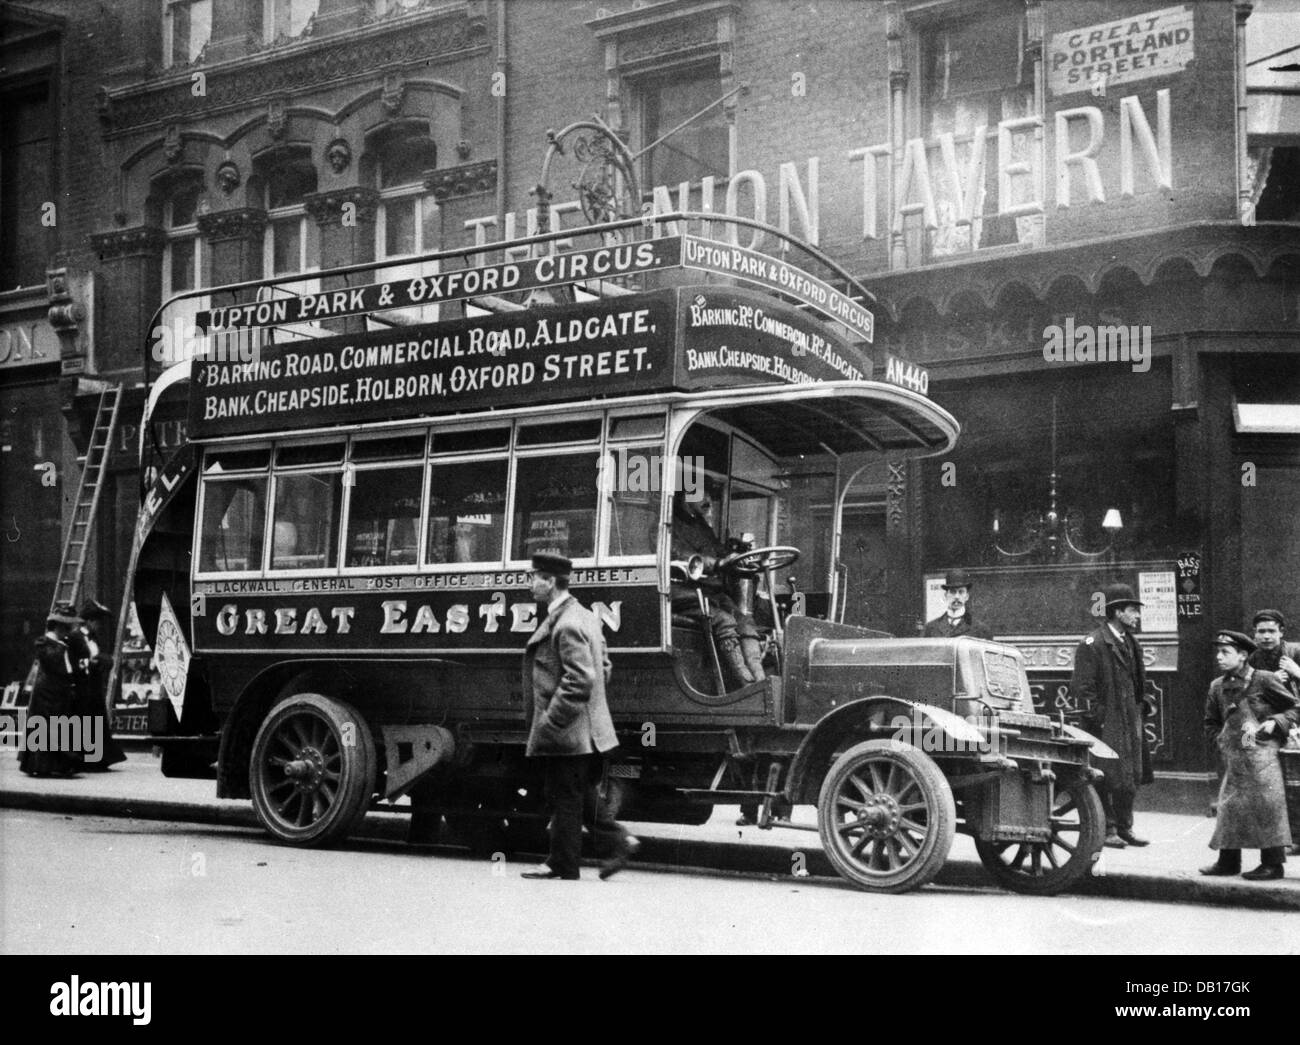 1906 Straker Squire bus 'Great Eastern' - Stock Image